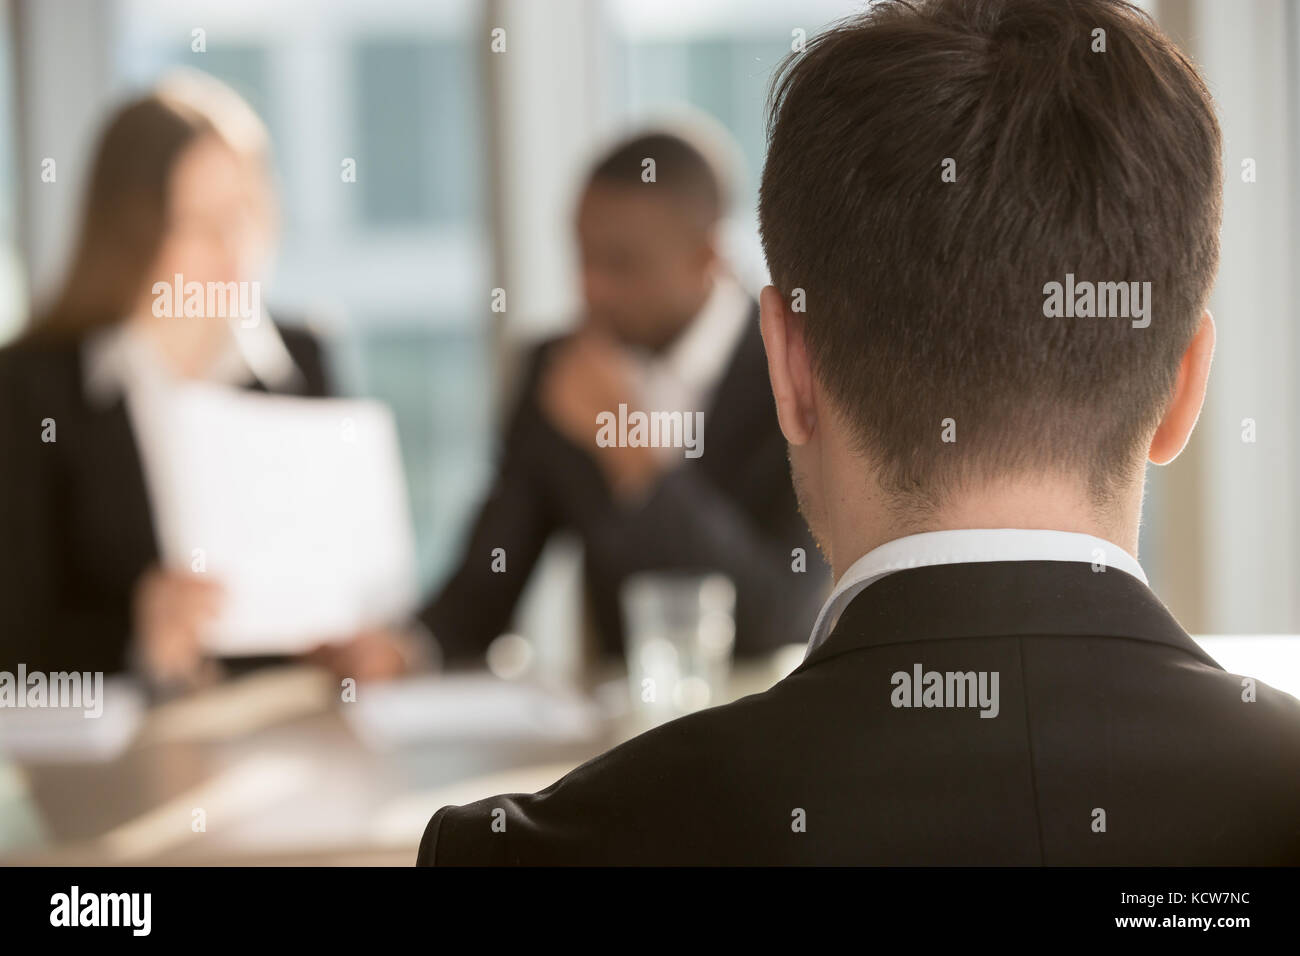 White male job candidate waiting for employers decision, multinational HR managers analyzing resume on background. - Stock Image